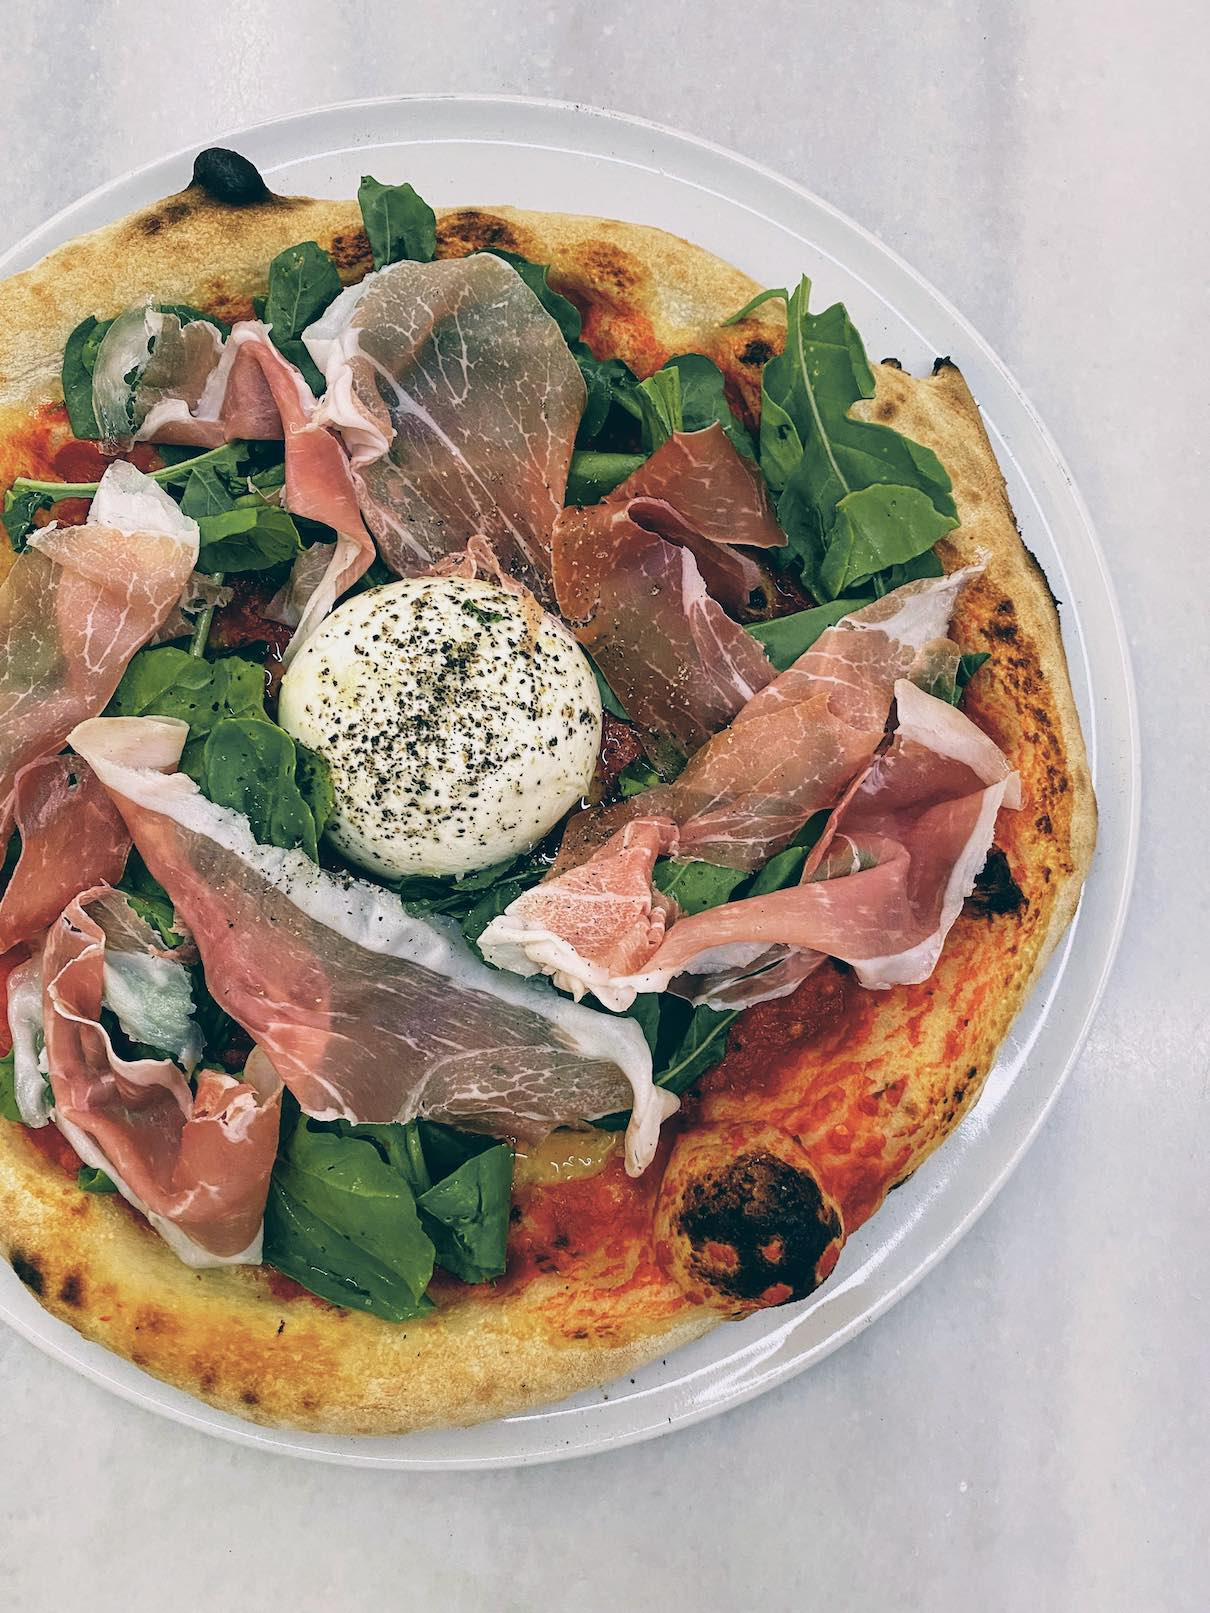 Kythira: eclectic Italian pizza with a stunning sunset view at Tony's